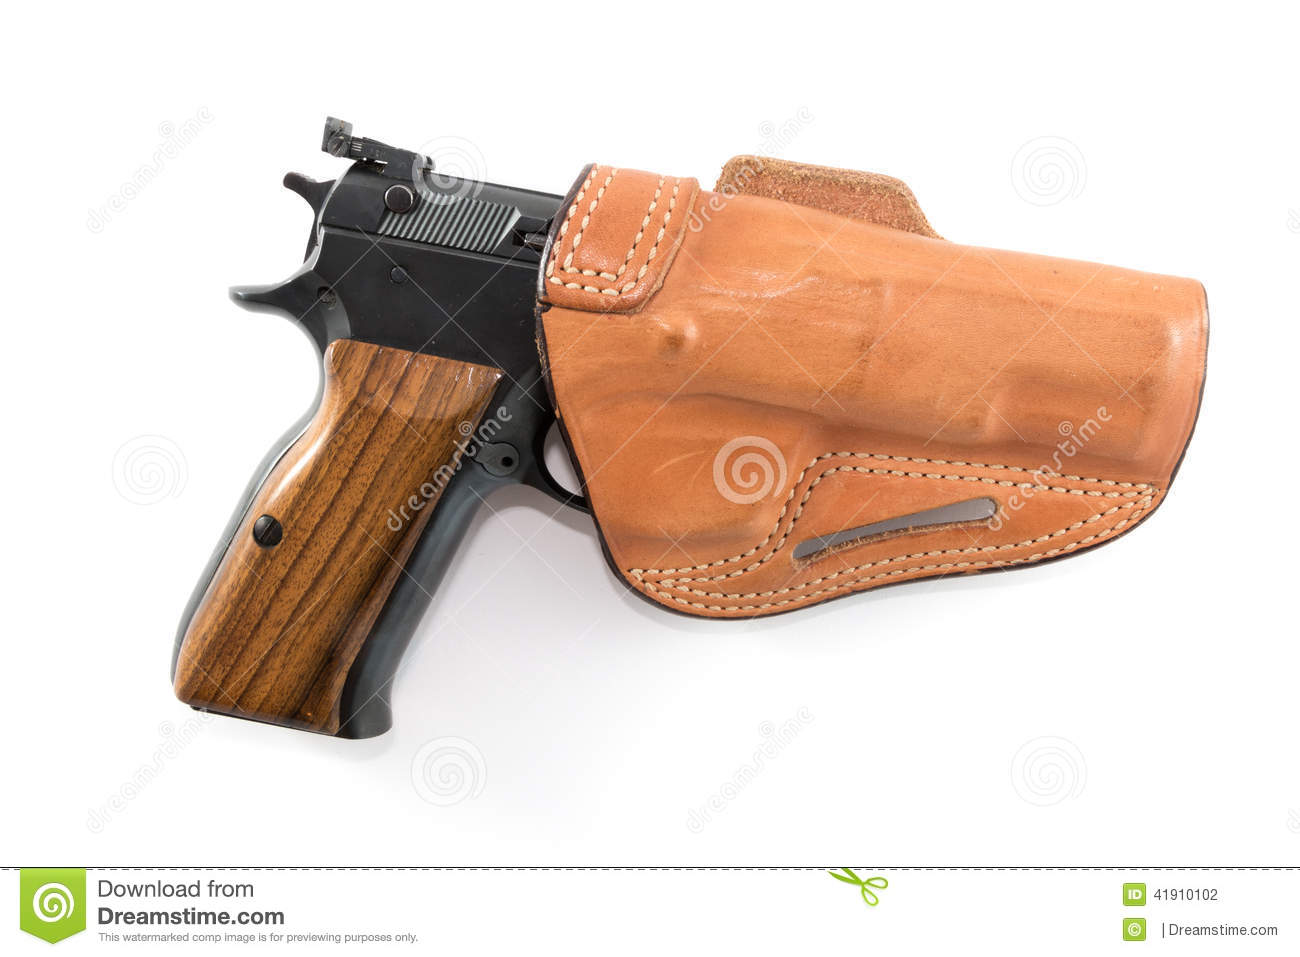 9mm Parabellum Pistol In Brown Leather Holster Stock Photo   Image